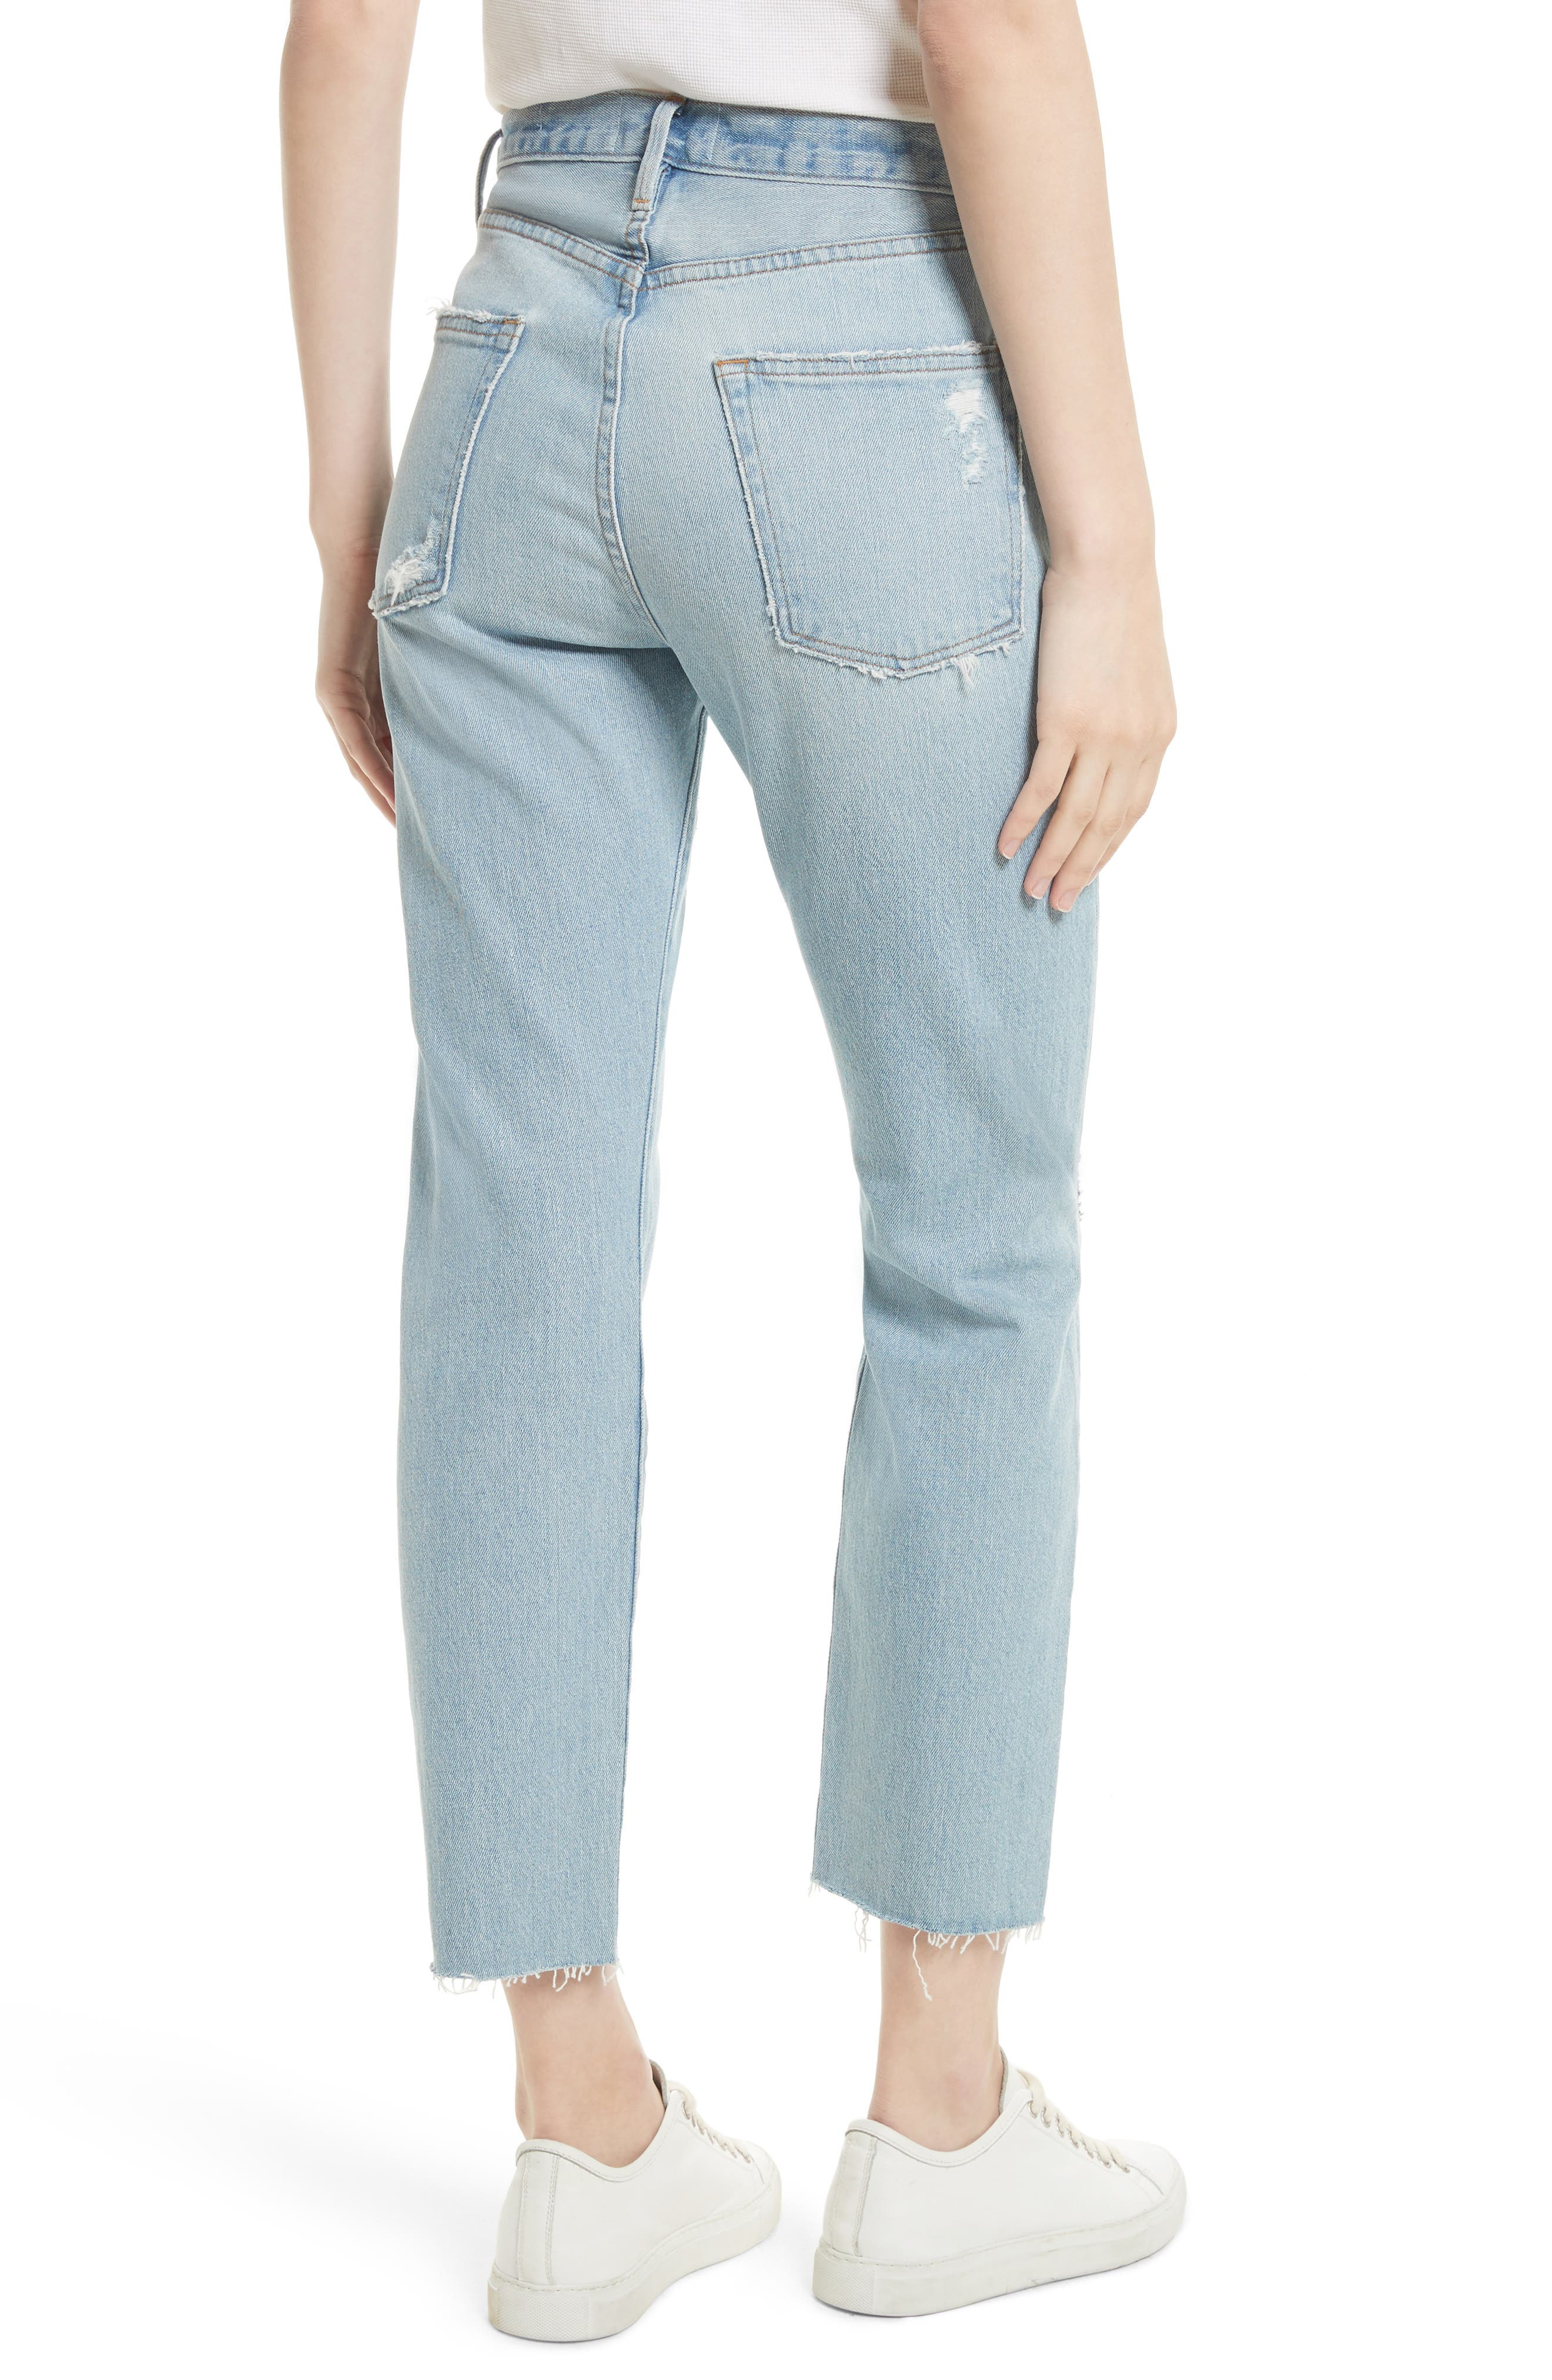 Le Original Raw Edge High Waist Jeans,                             Alternate thumbnail 2, color,                             450